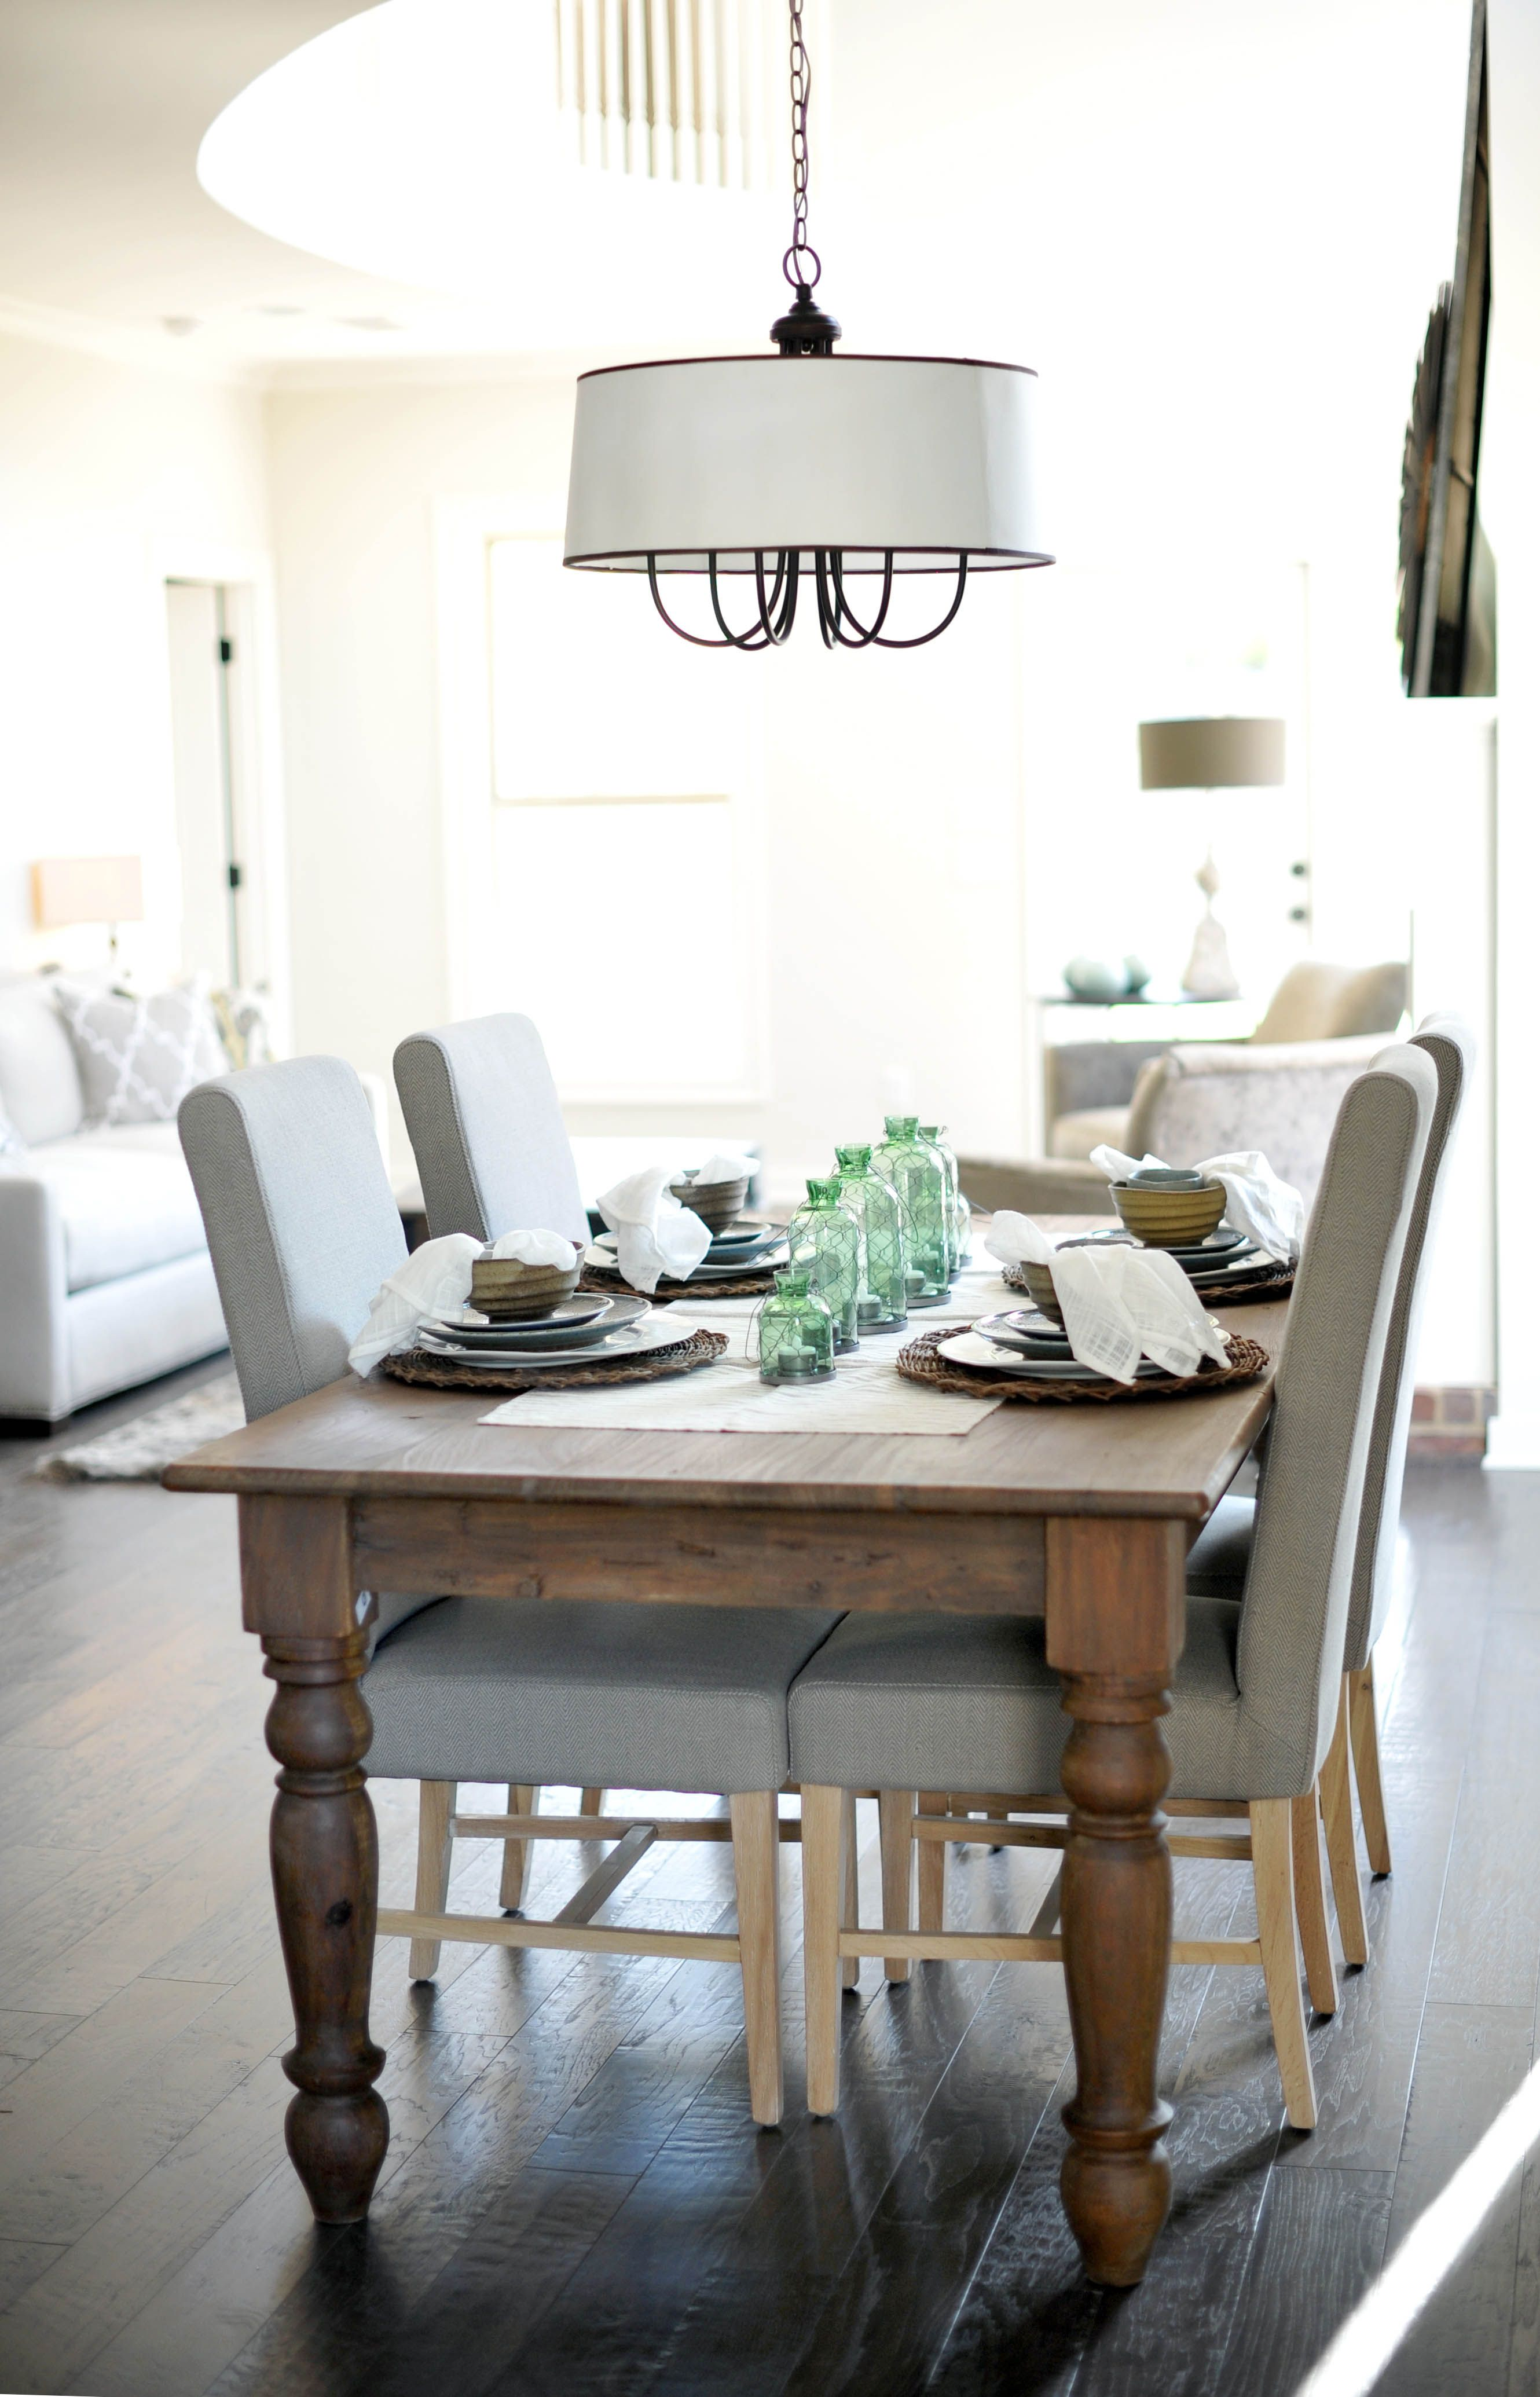 Traditional table design but with a rustic finish they sell it at